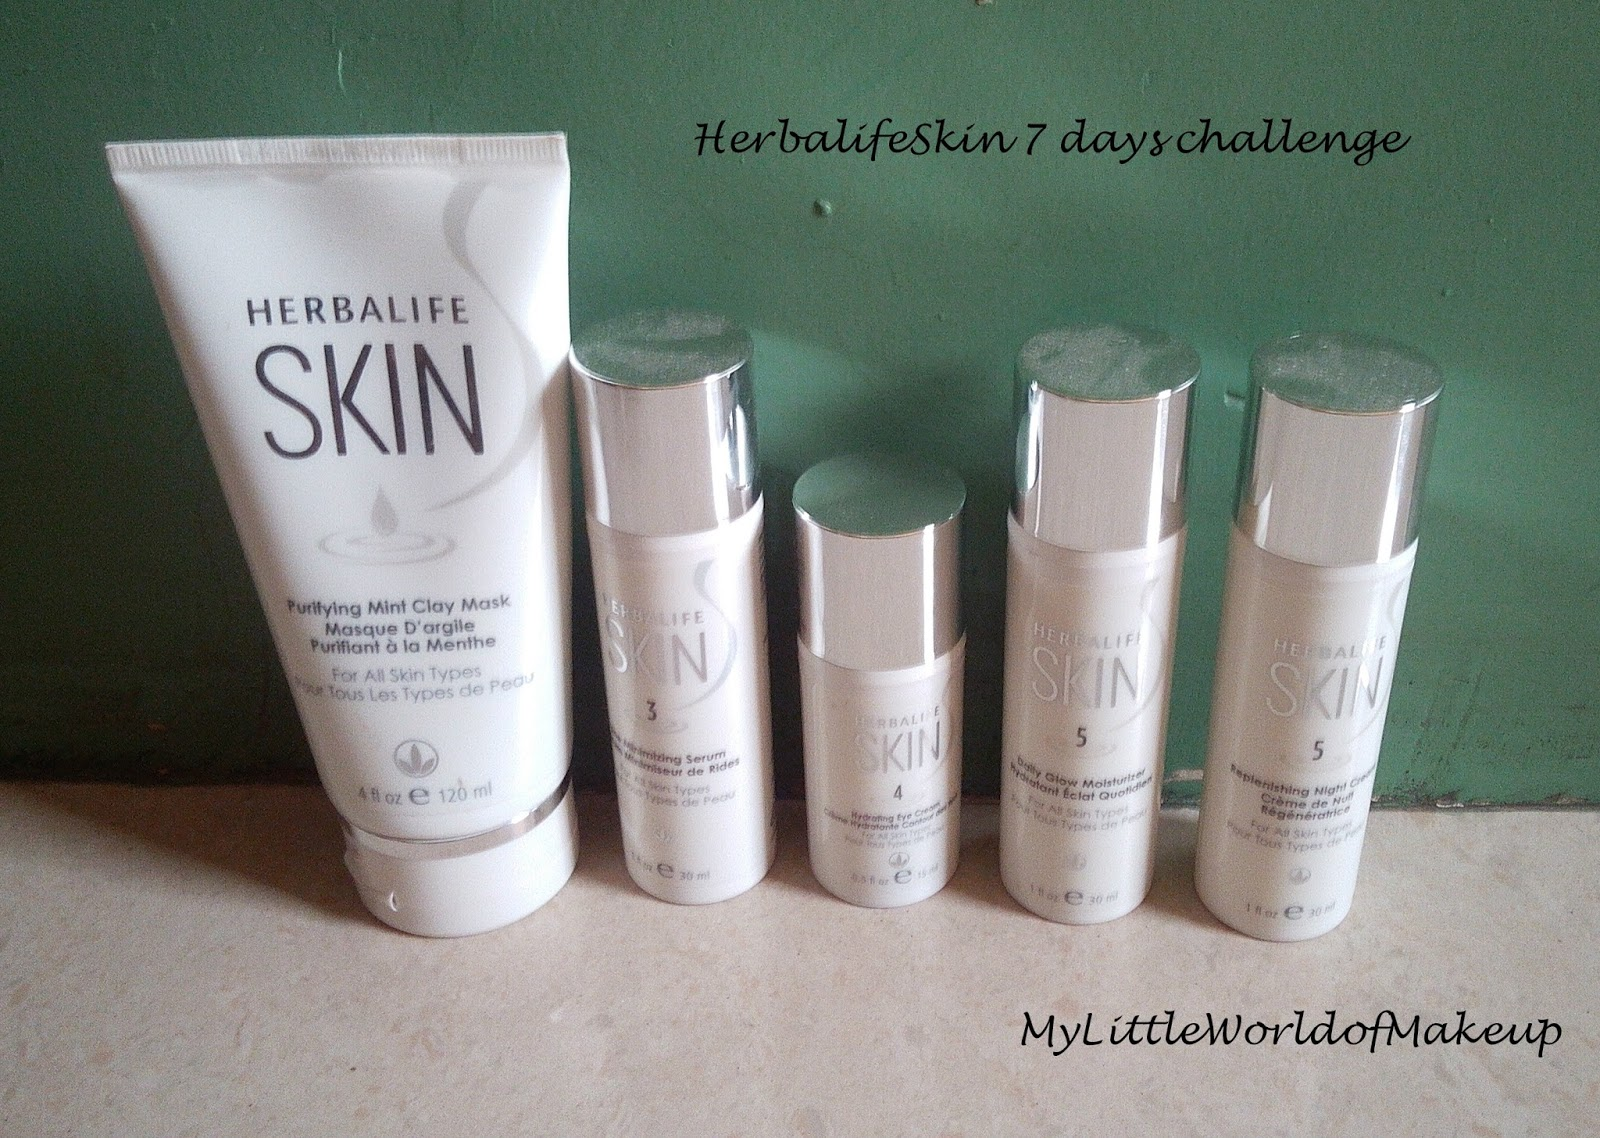 Care herbal life product skin - Herbalife Skin Products 7 Days Challenge My Overall Experience